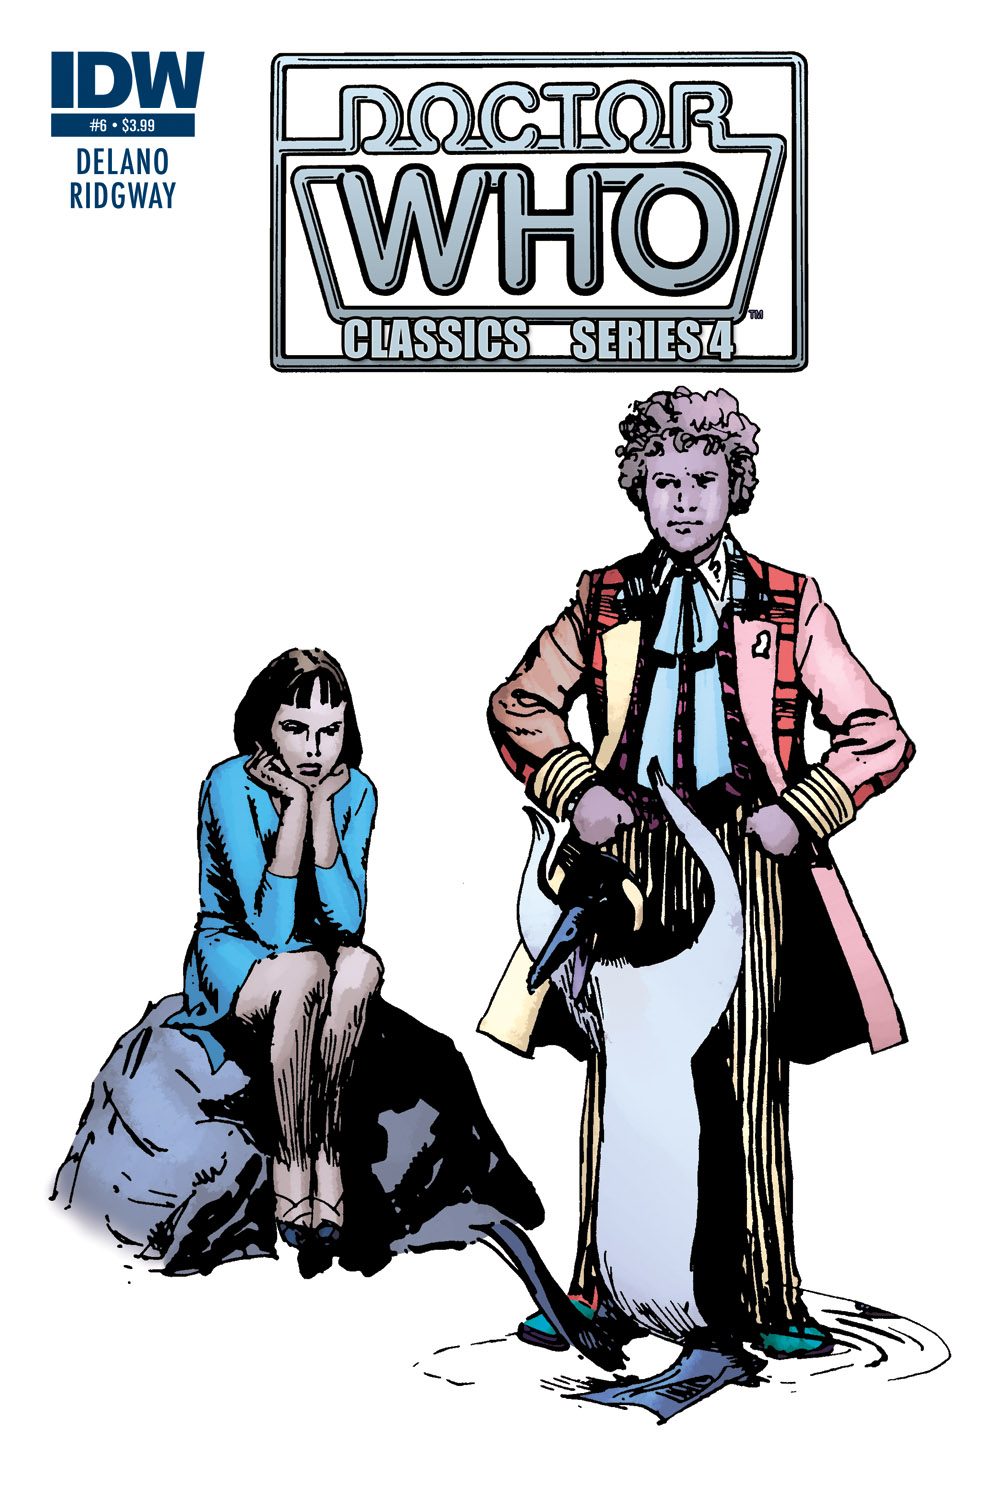 Doctor Who Classics Series IV #6